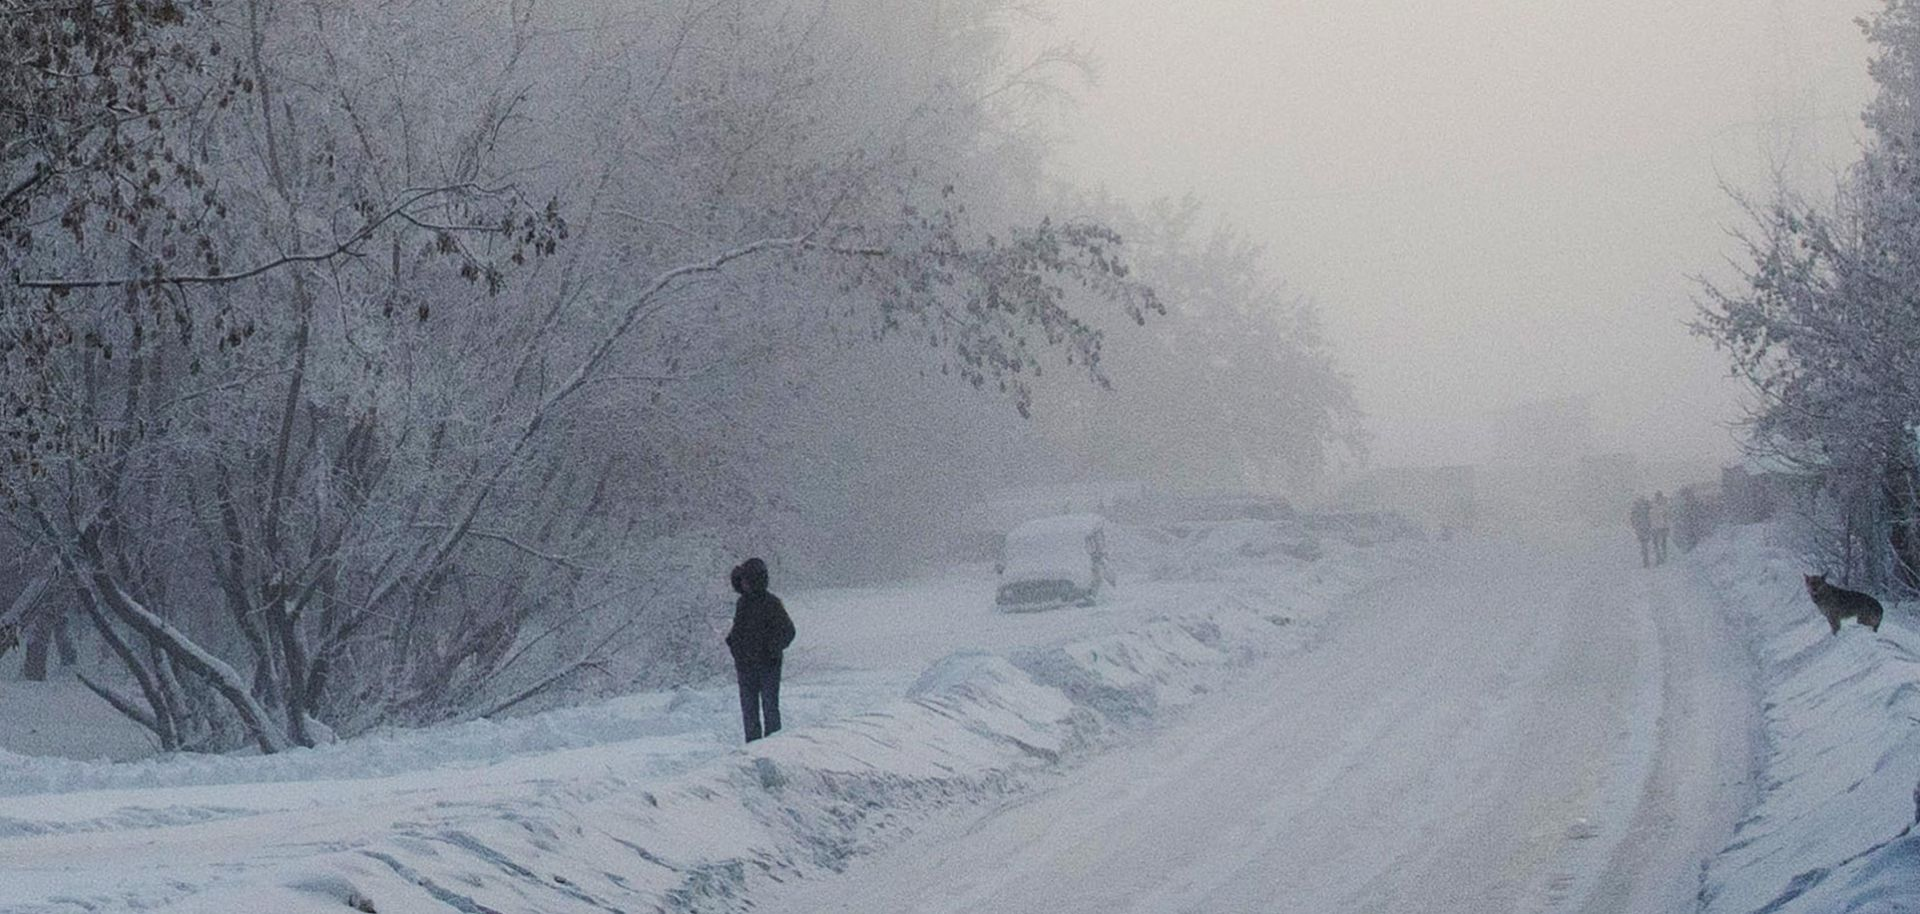 A lone figure picks their way through the ethereal frosted landscape of Novosibirsk, Russia. Russia has always struggled with the idea of Eurasia, geographically and culturally.